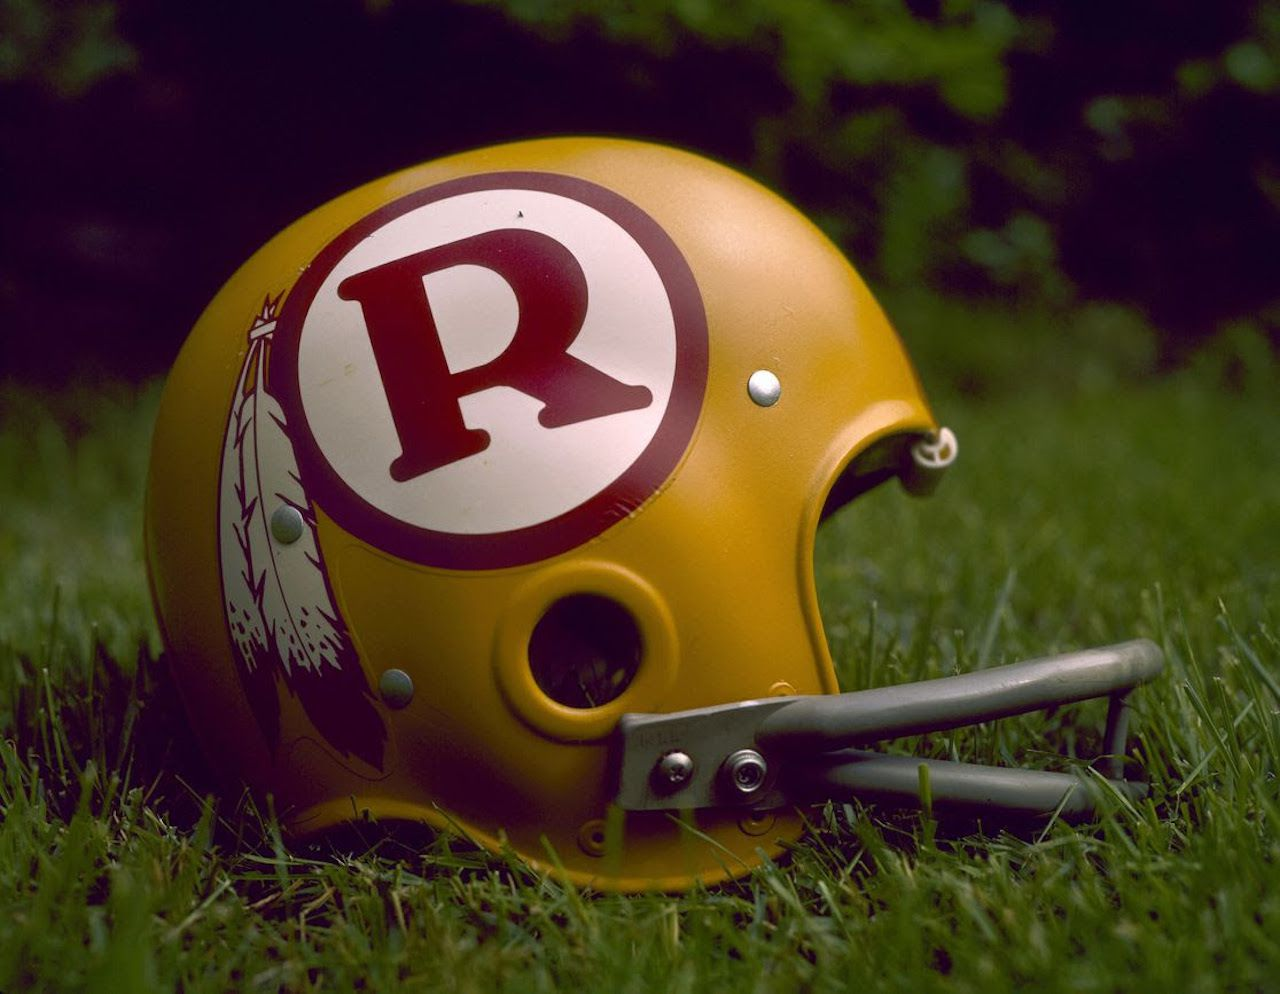 Redskins anticipated to vary identify by September thumbnail